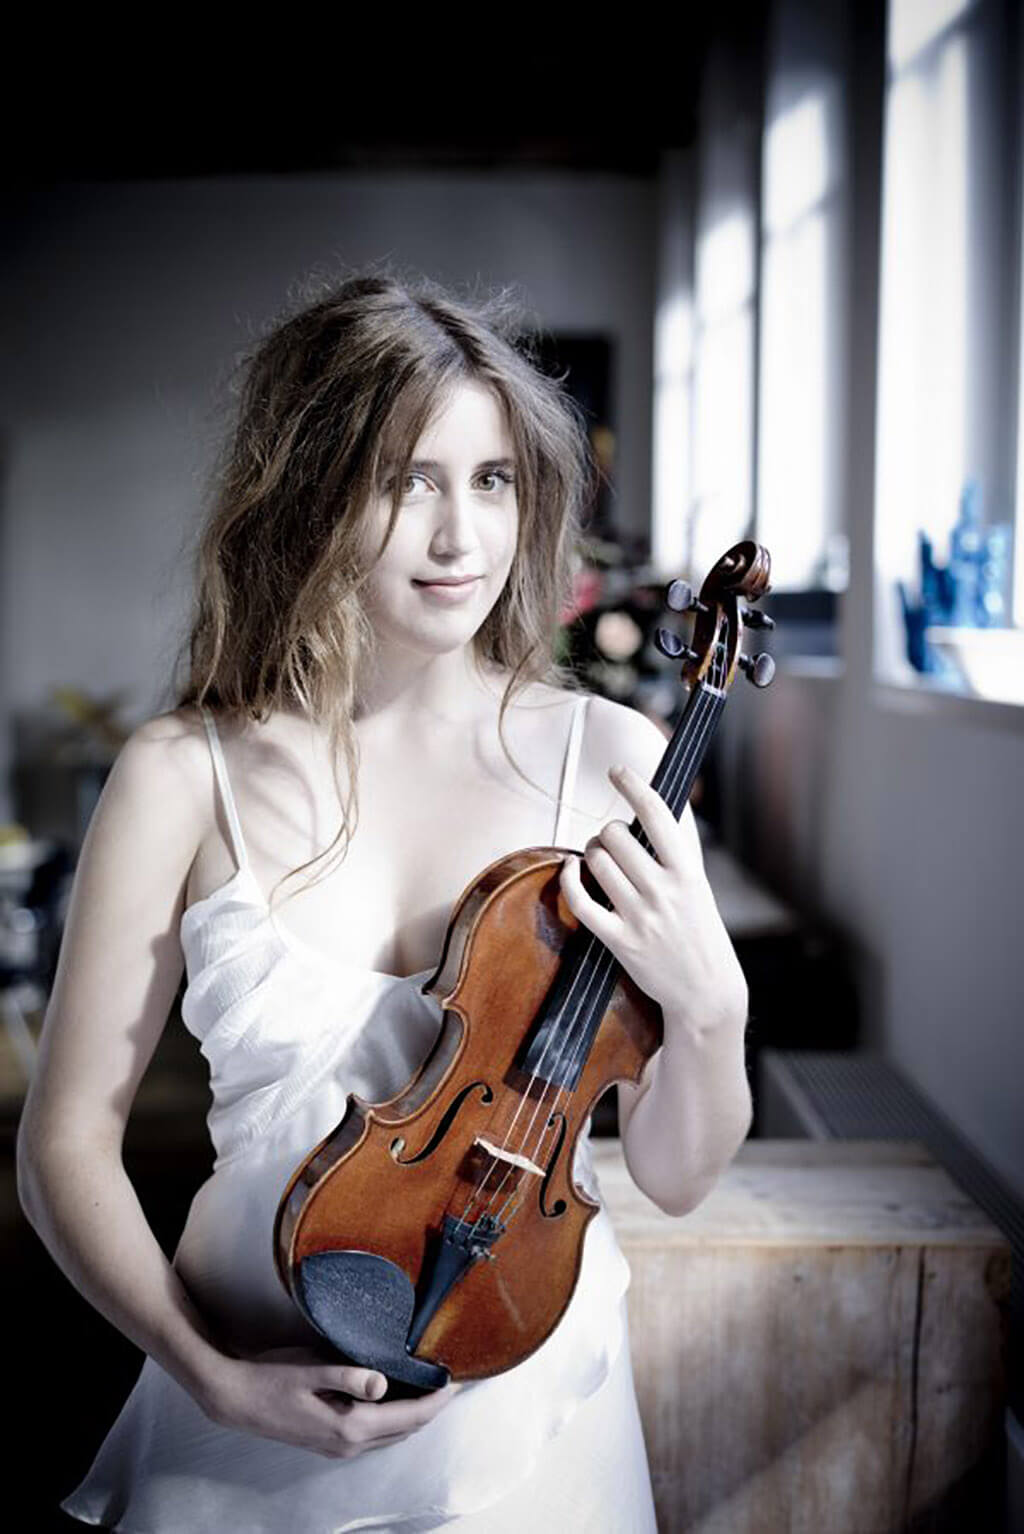 Vilde Frang (Photo: Marco Borggreve)